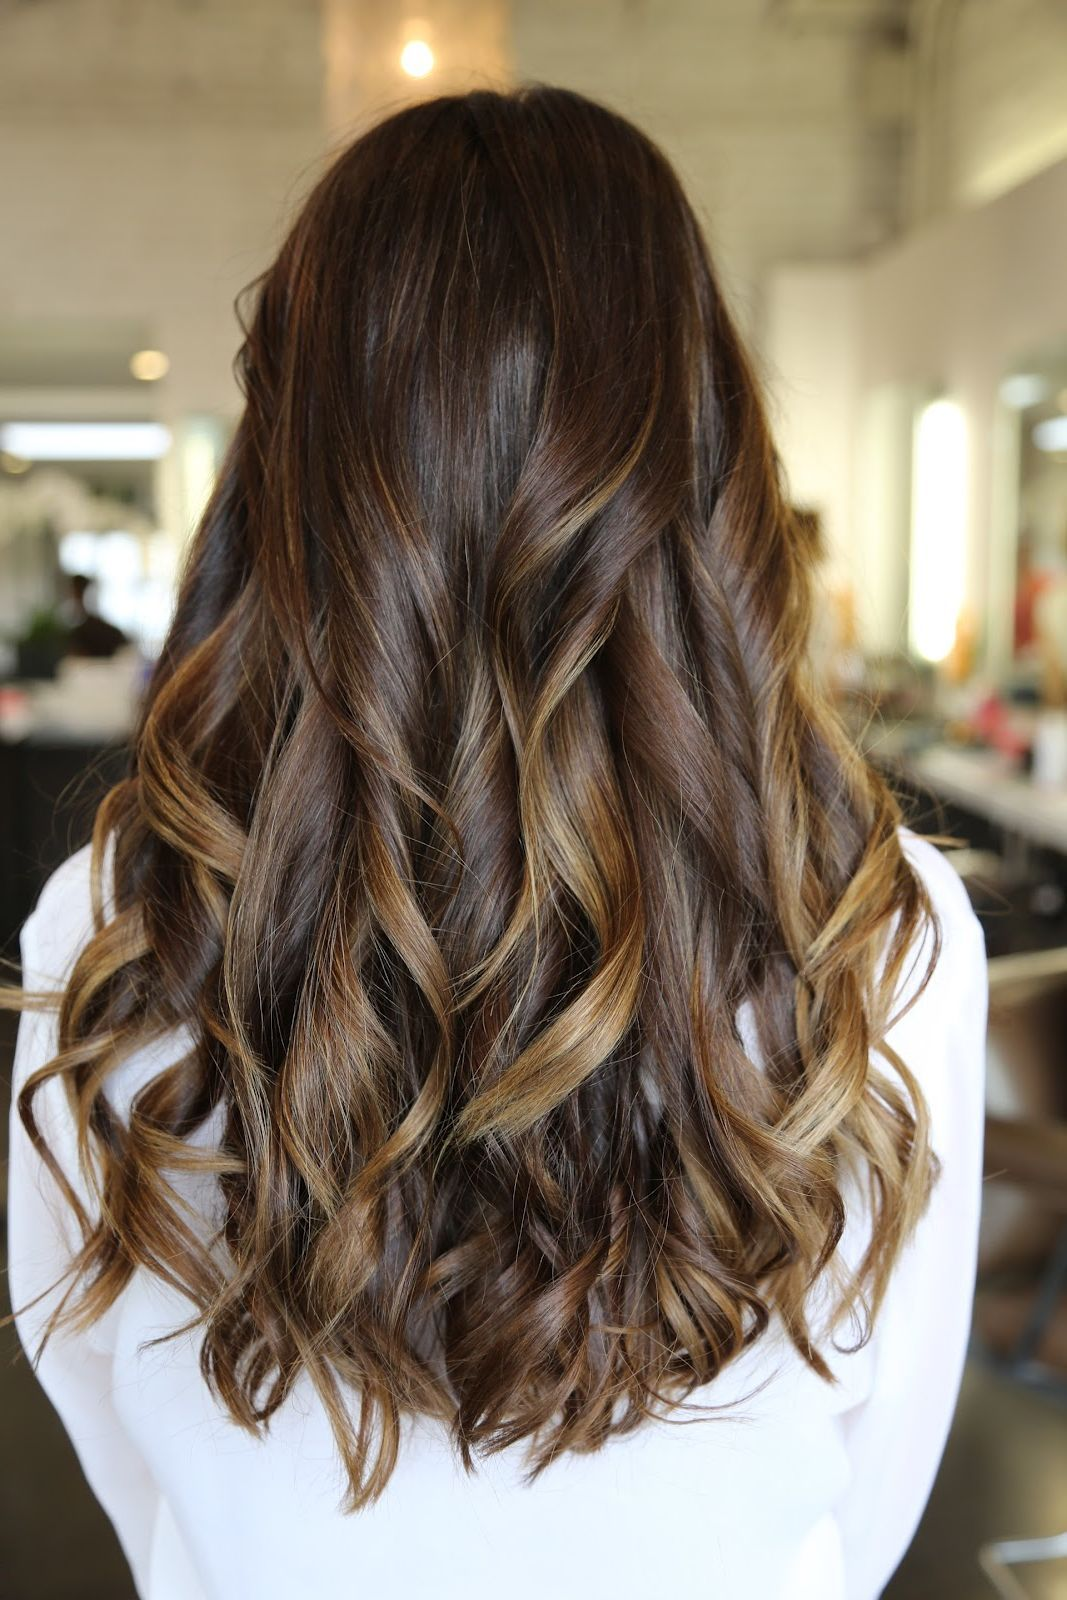 New-Design-of-Blonde-and-Caramel-Highlights-on-Black-Hair ...